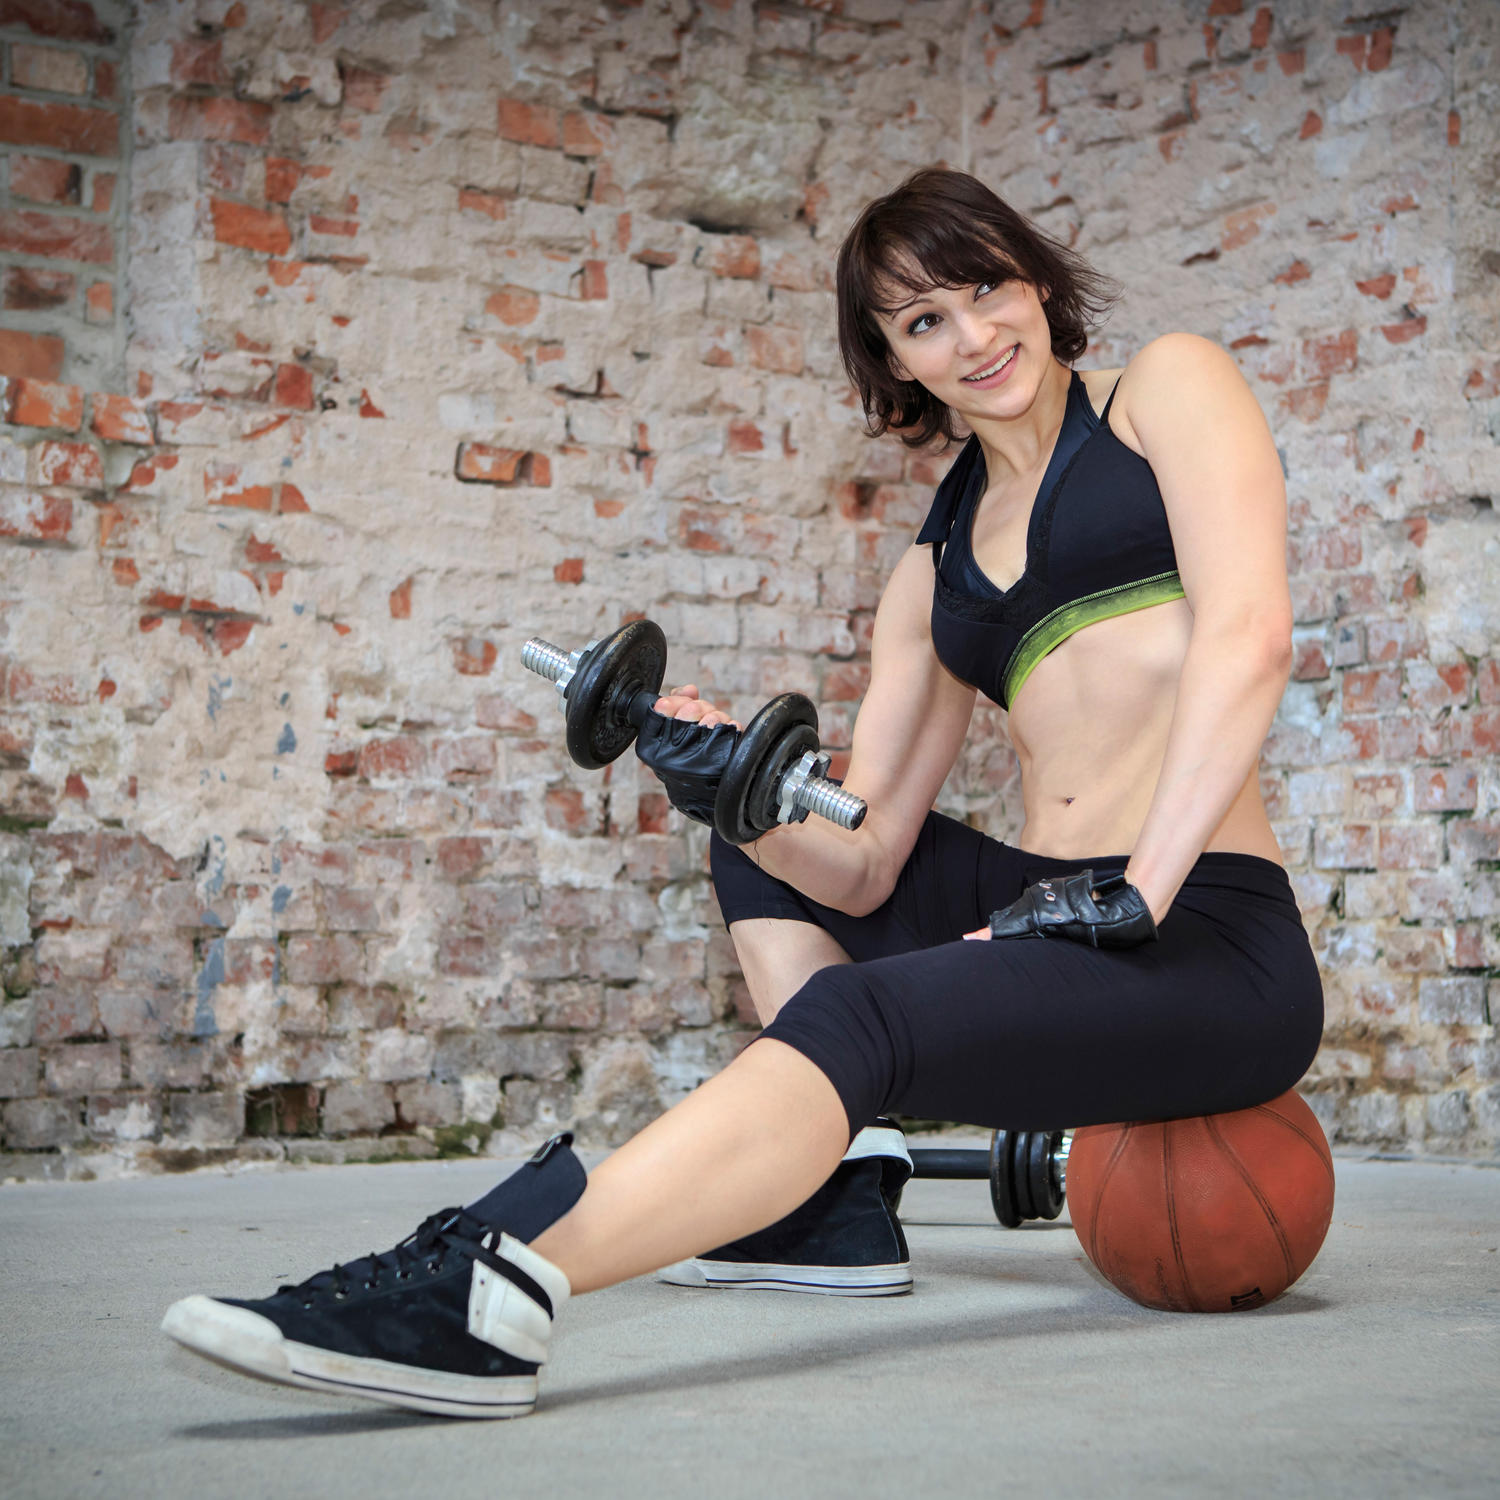 Fitness Gloves In Spain: Workout Plans: 16 Deceptively Simple Strength Exercises